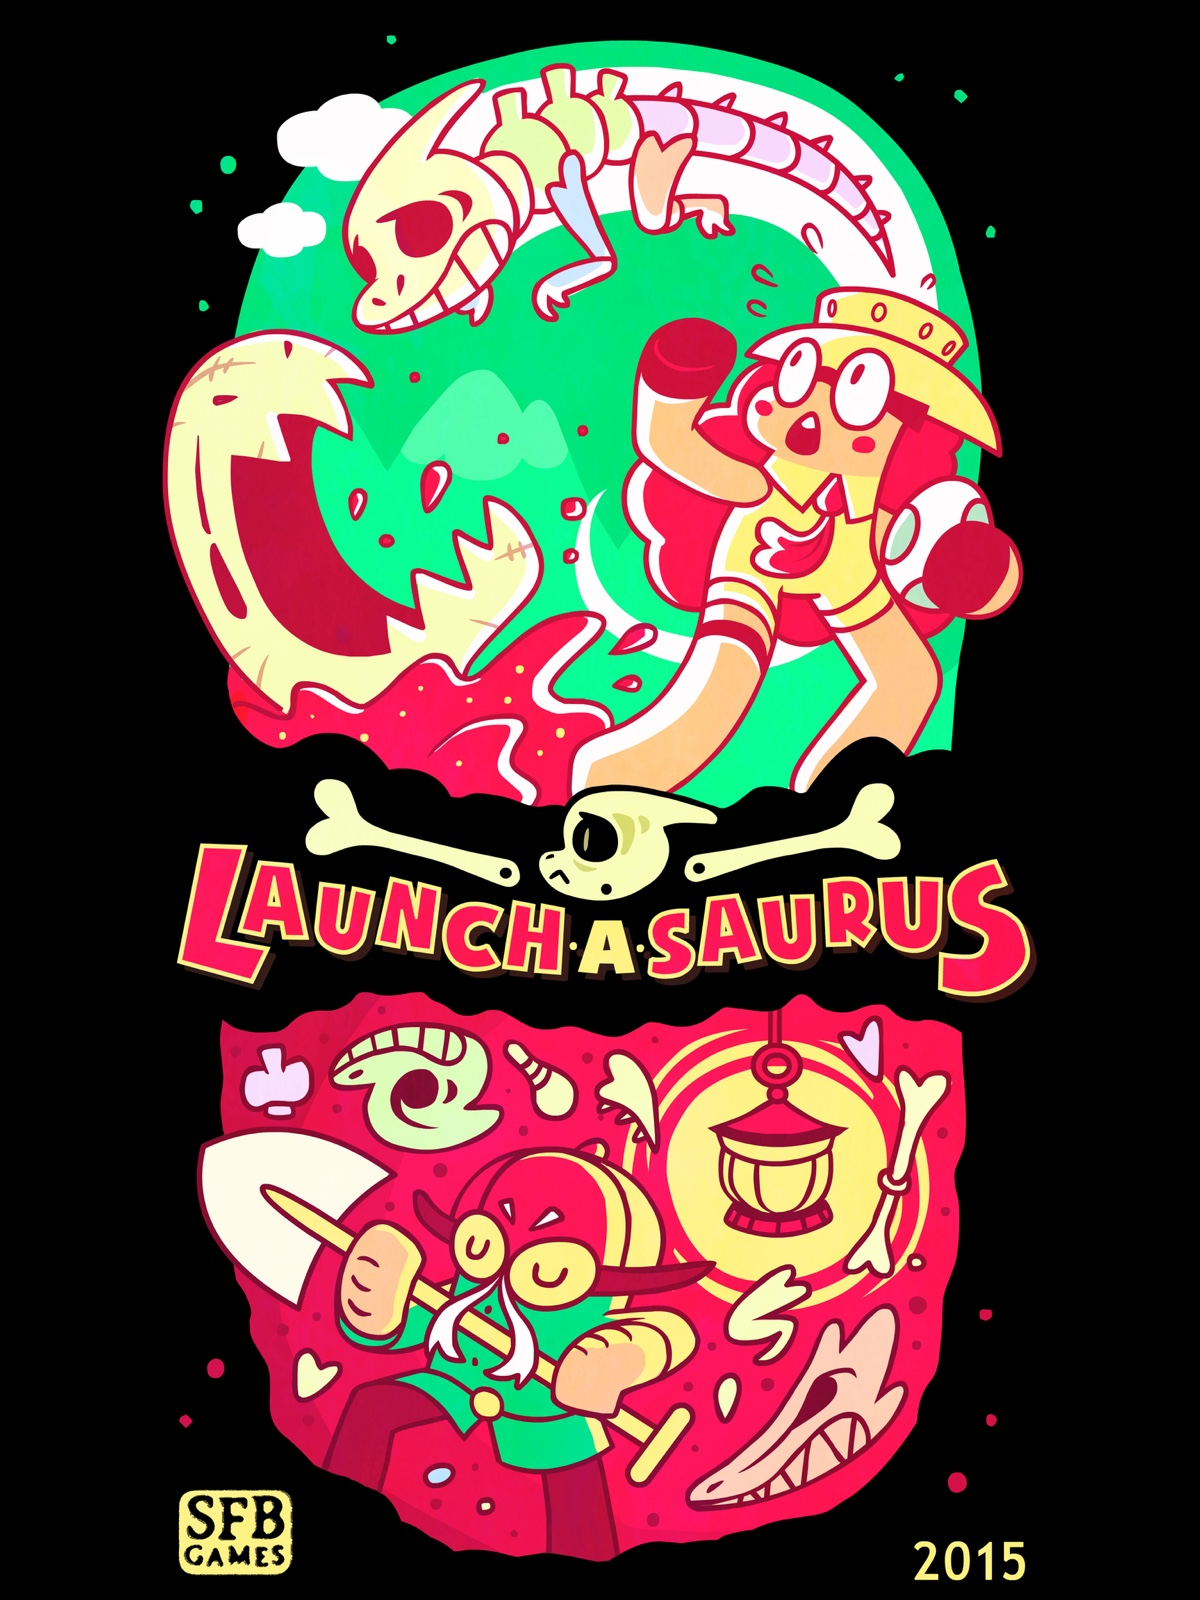 Bonkers dinosaur curling game Launchasaurus took first prize at our Big Indie Pitch at Apps World